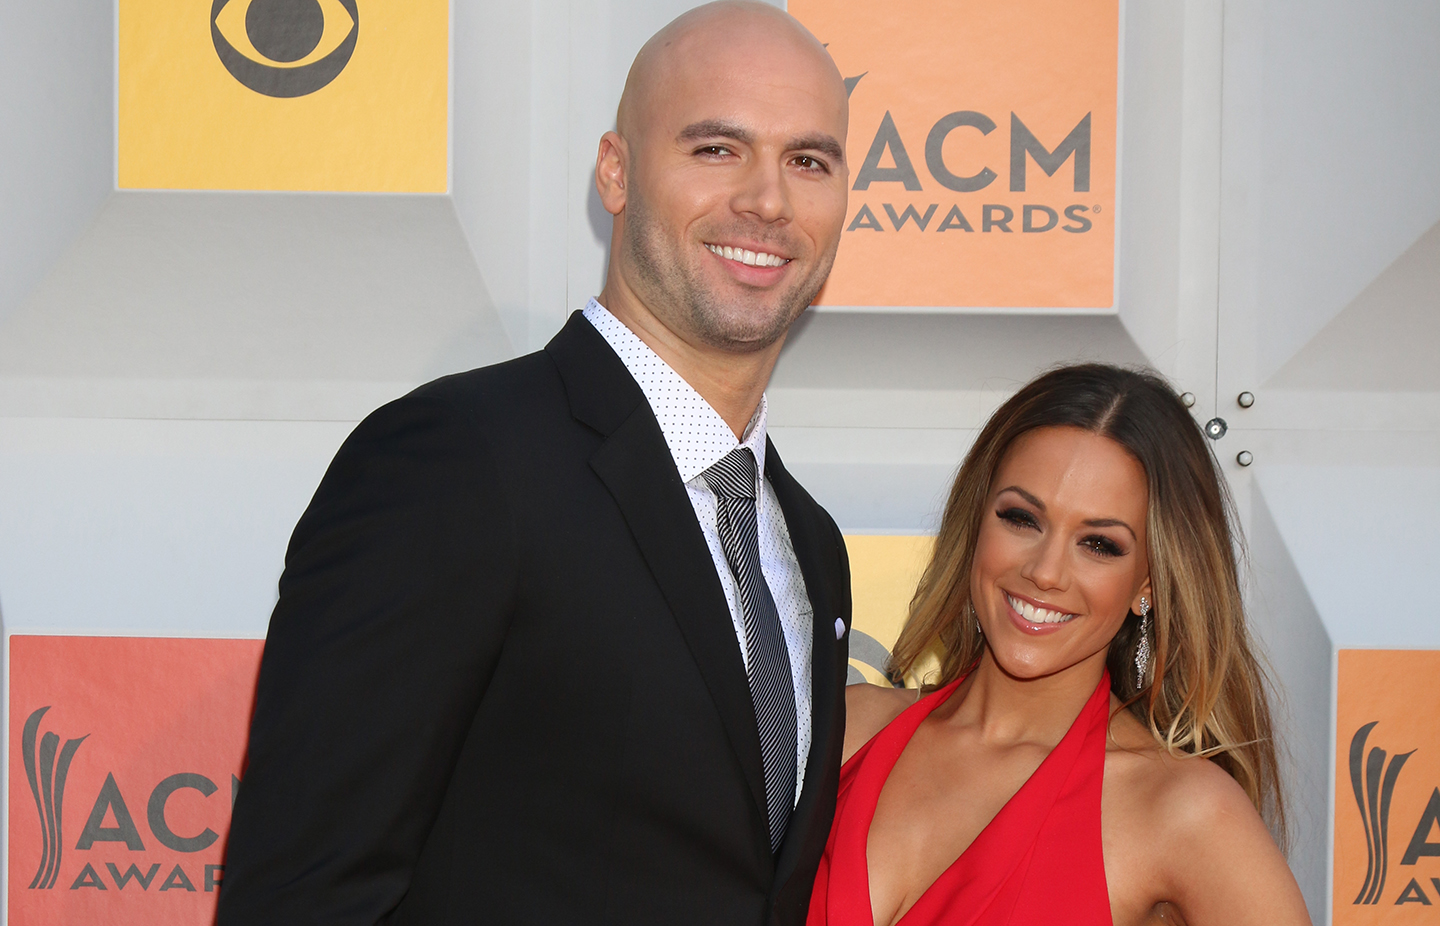 Jana Kramer and Mike Caussin ACM Awards